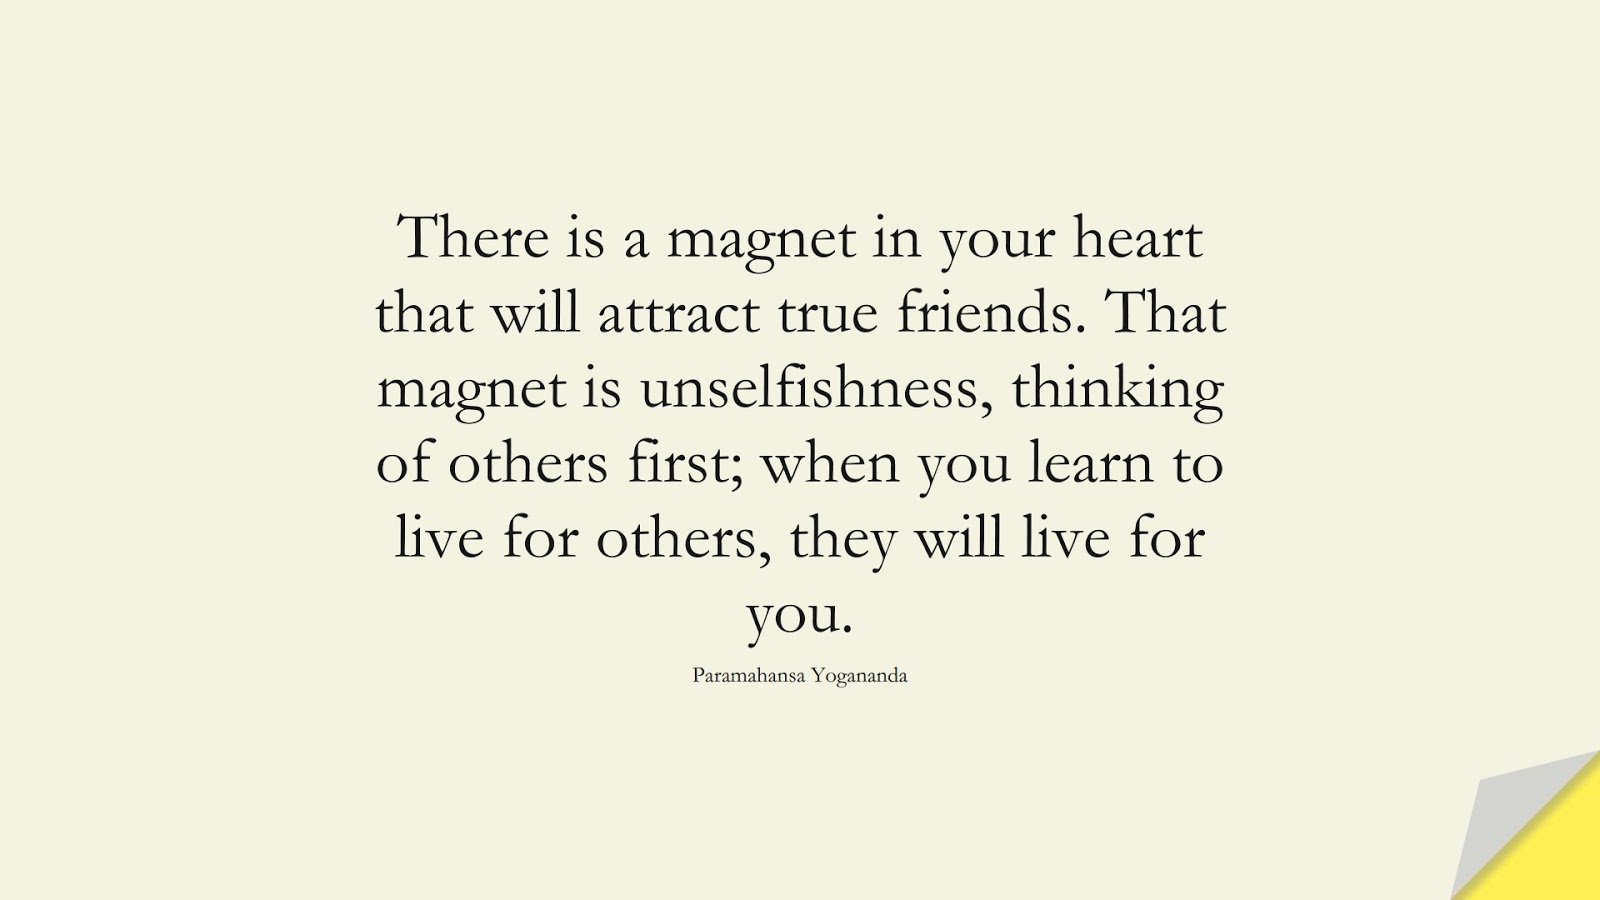 There is a magnet in your heart that will attract true friends. That magnet is unselfishness, thinking of others first; when you learn to live for others, they will live for you. (Paramahansa Yogananda);  #FriendshipQuotes